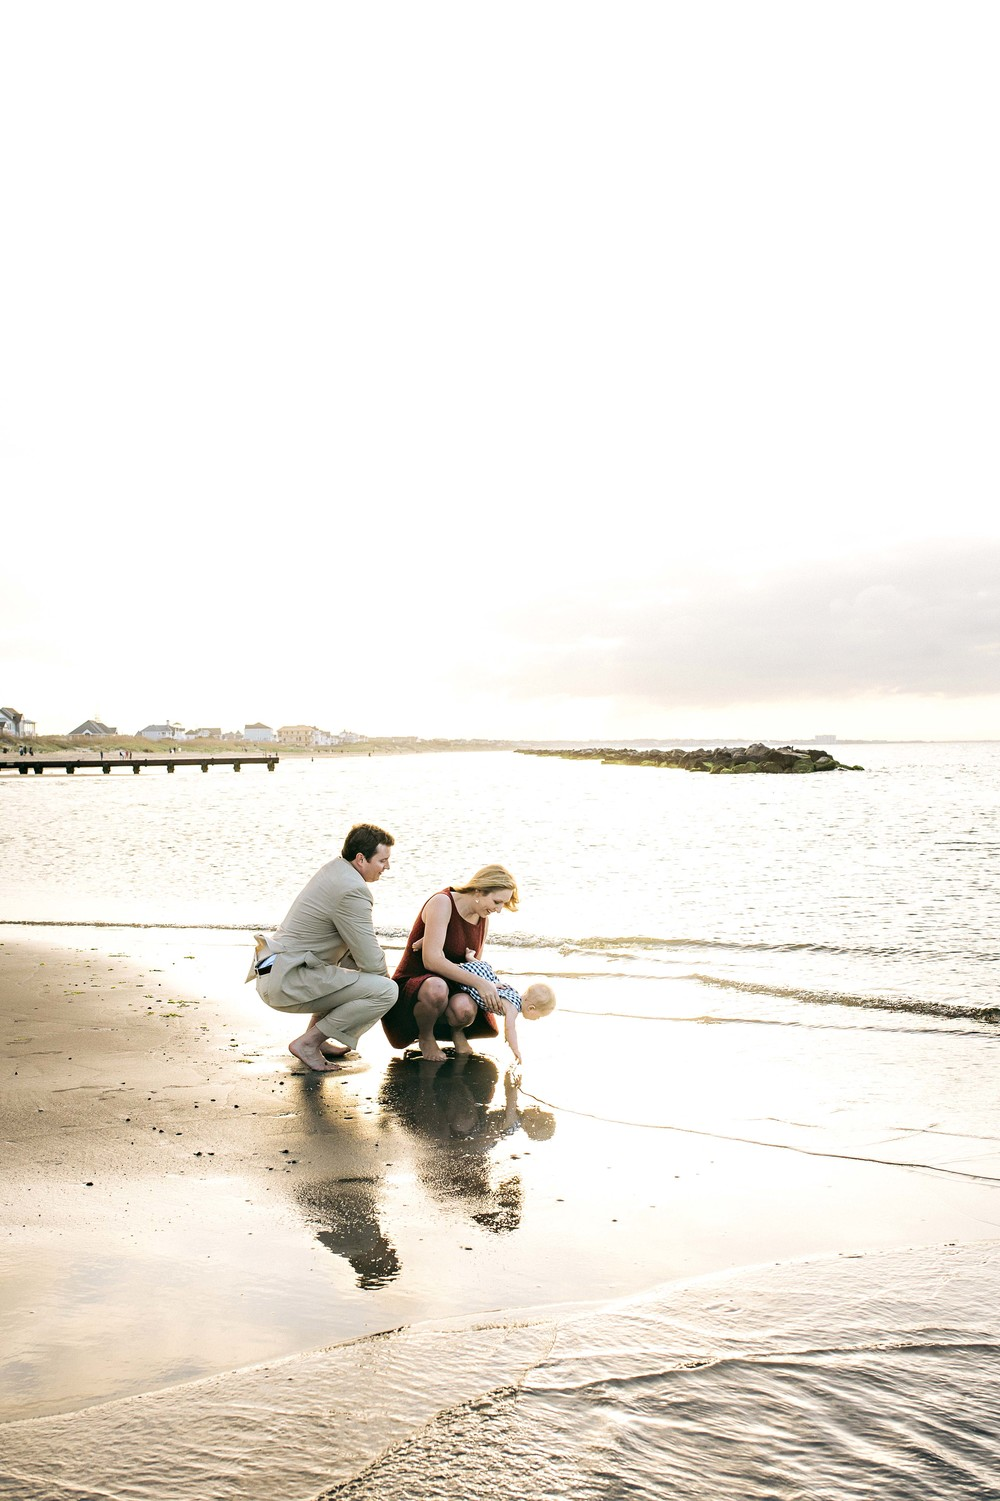 melissa-bliss-photography-family-beach-session-east-beach-norfolk-virginia-beach-photographers